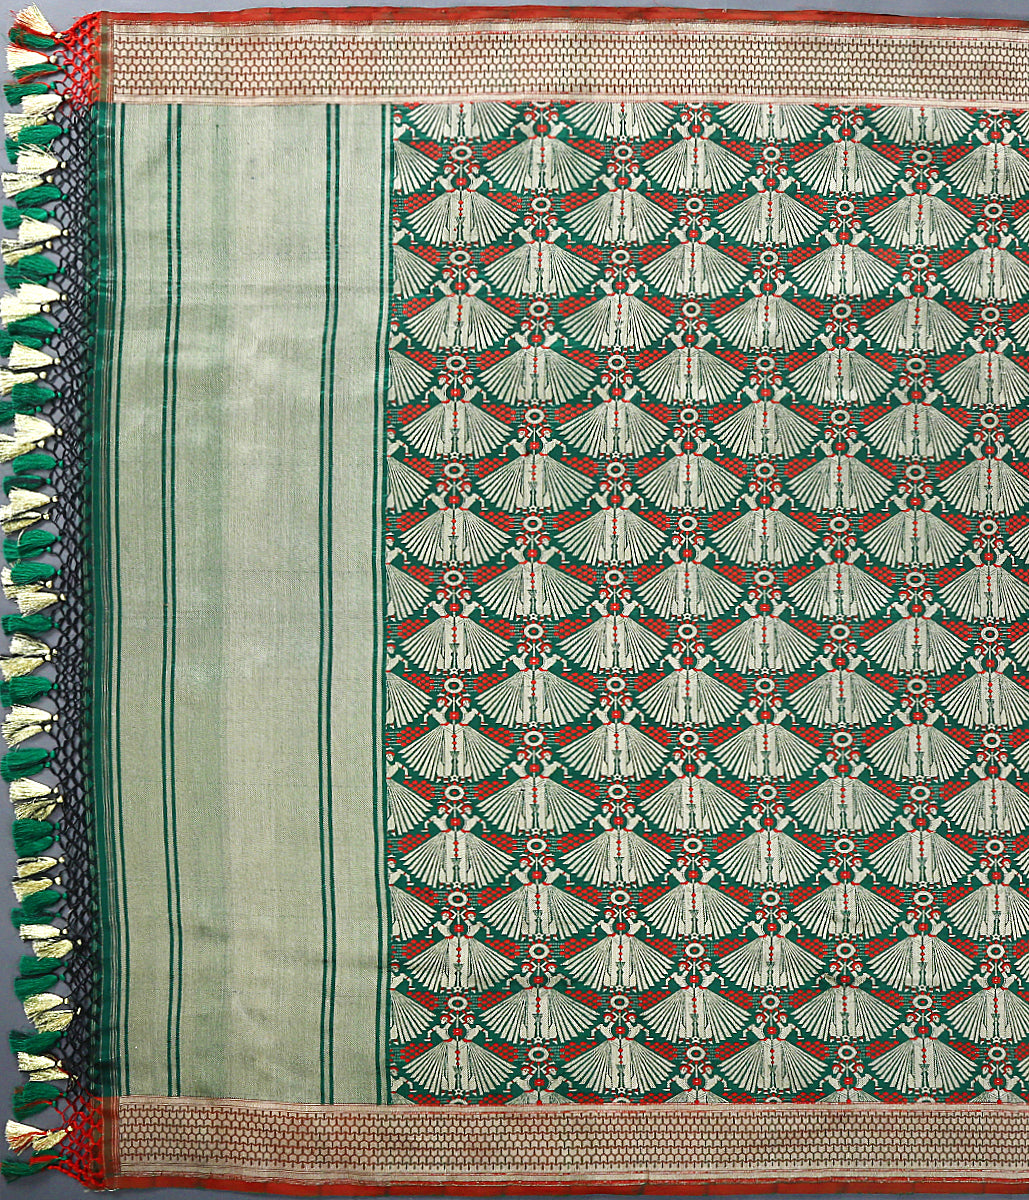 Handwoven Green Banarasi Silk Dupatta With Nartaki Motif